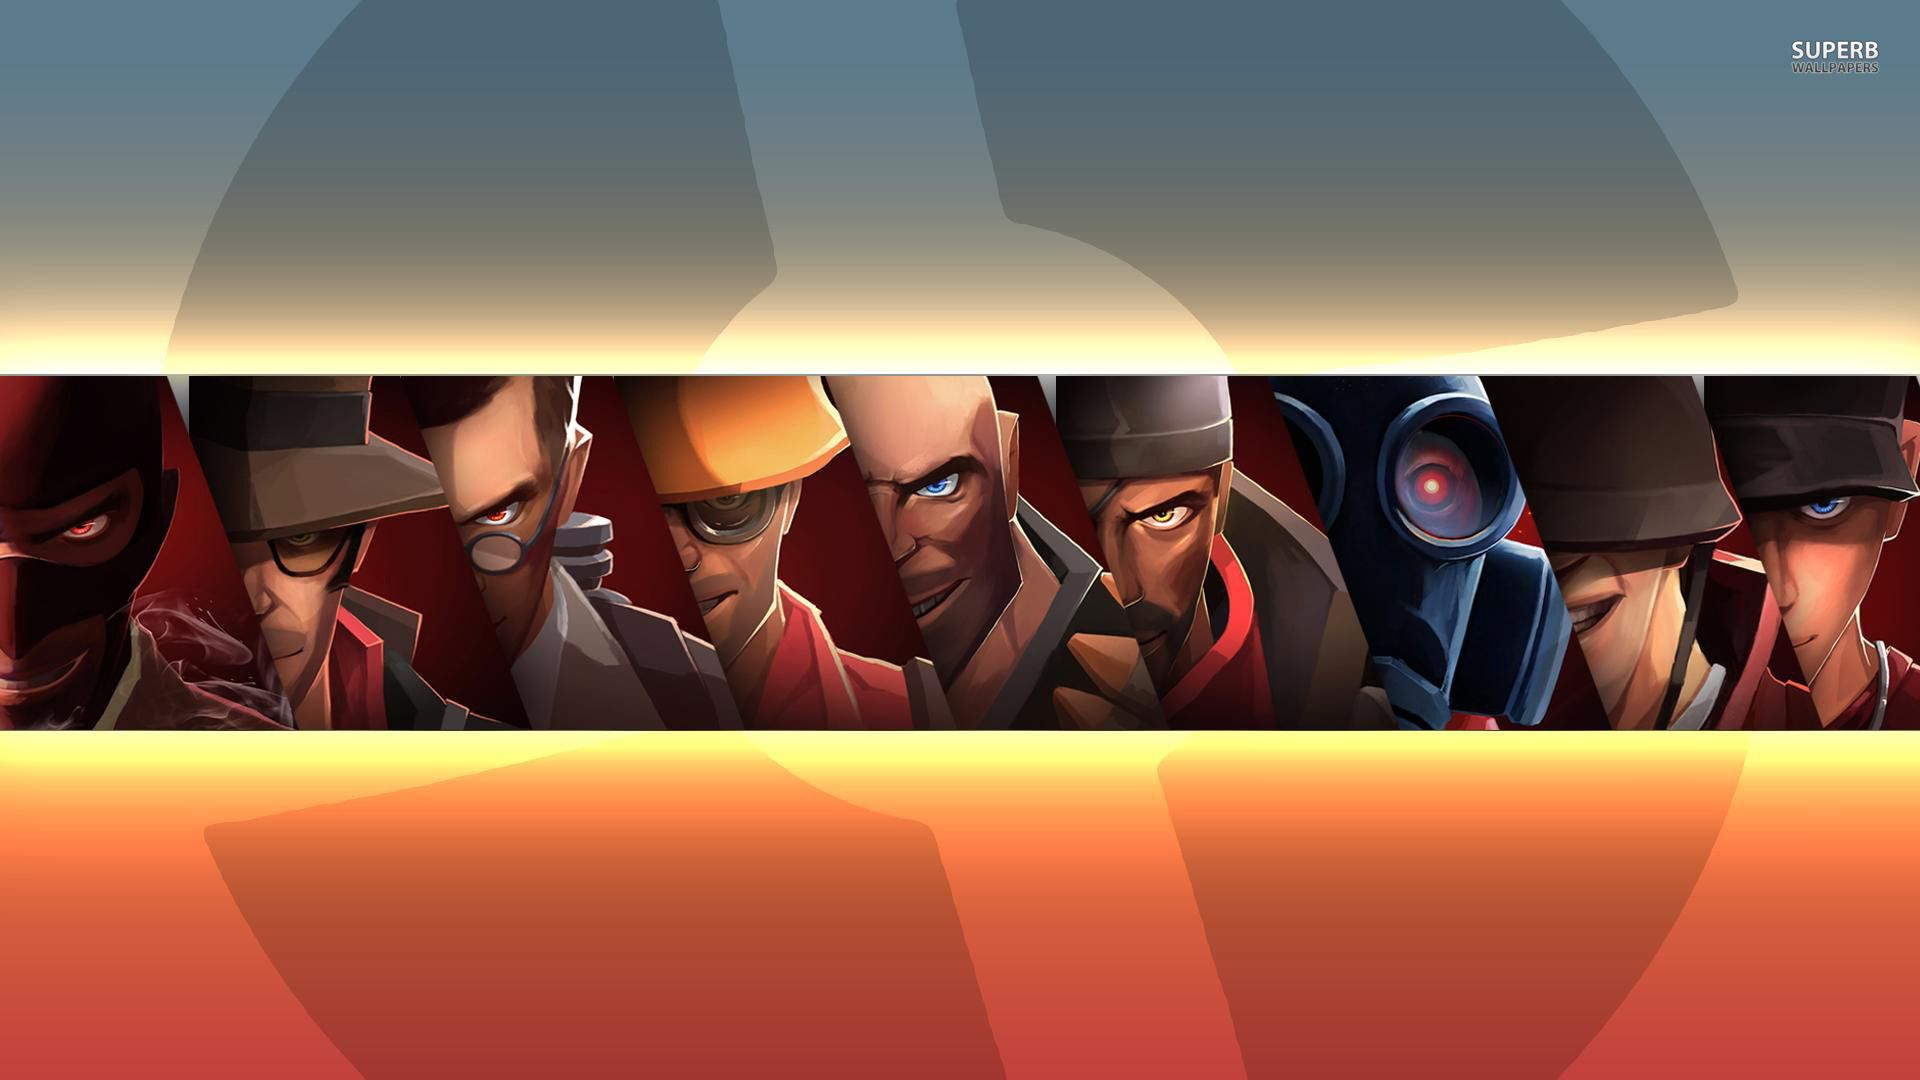 Team Fortress 2 Background Sf Wallpaper